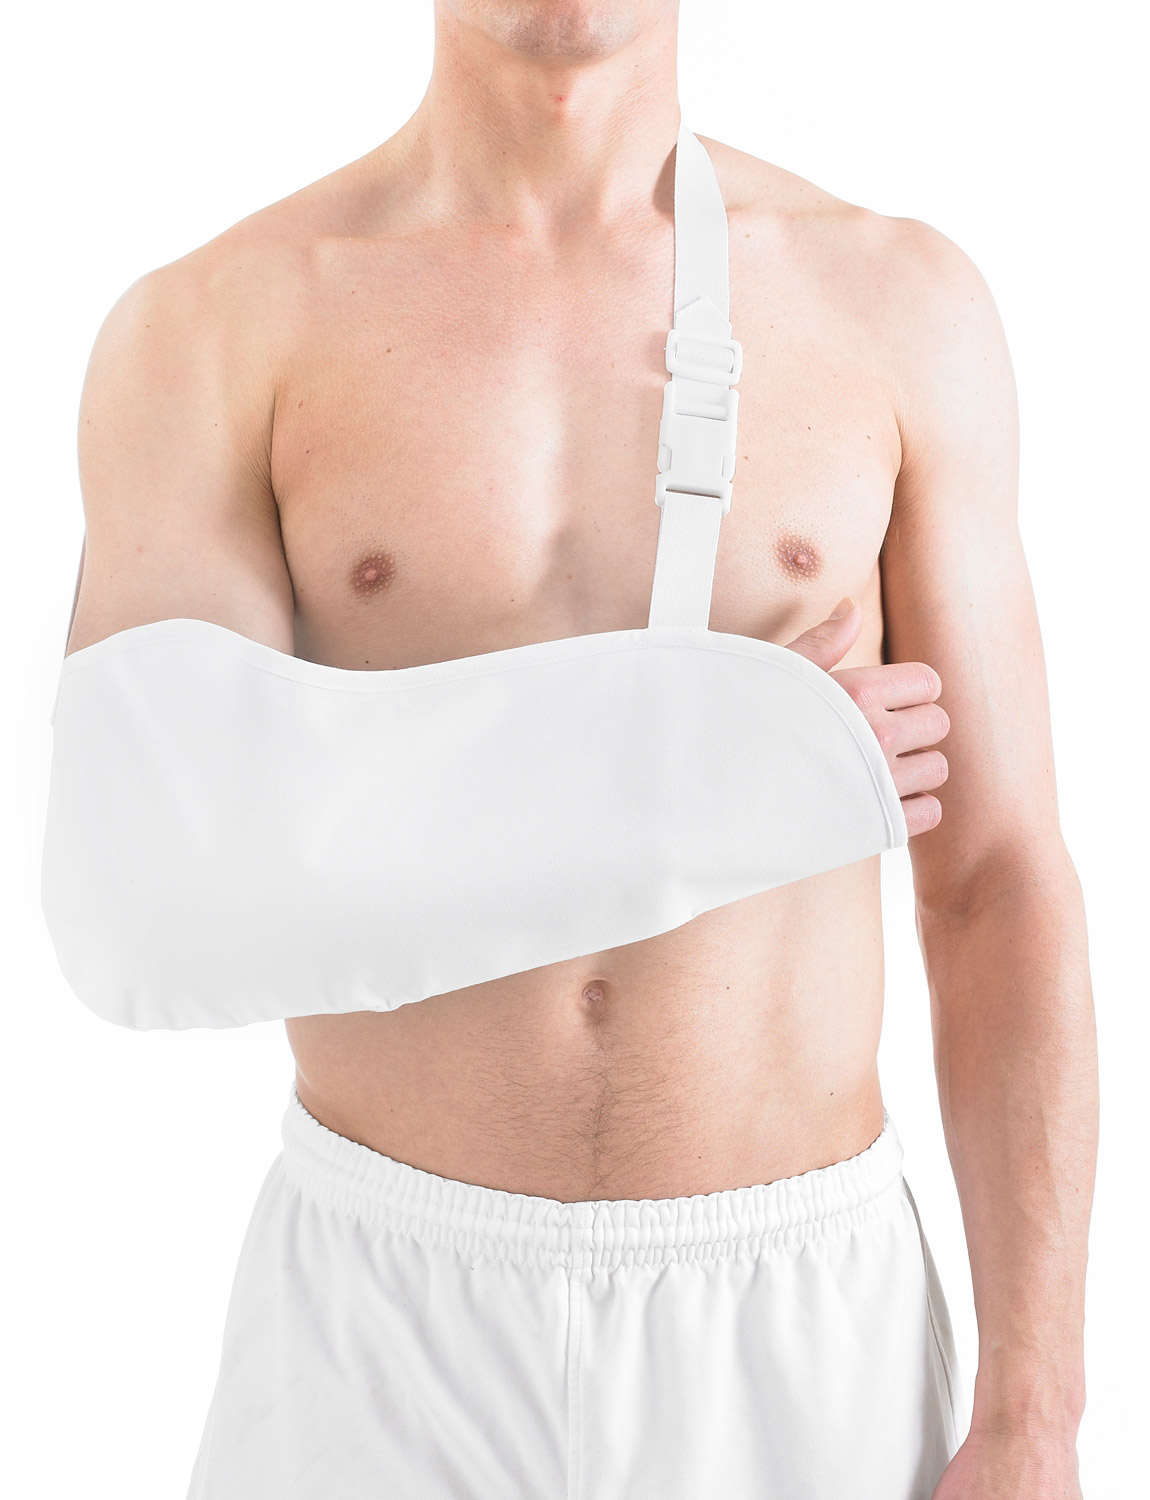 302 - COTTON ARM SLING  Breathable Cotton Arm Sling is a comfortable and lightweight support made from breathable cotton. Helps support and elevate the shoulder and arm to enable a comfortable healing position after injury and help minimize movement during recovery.